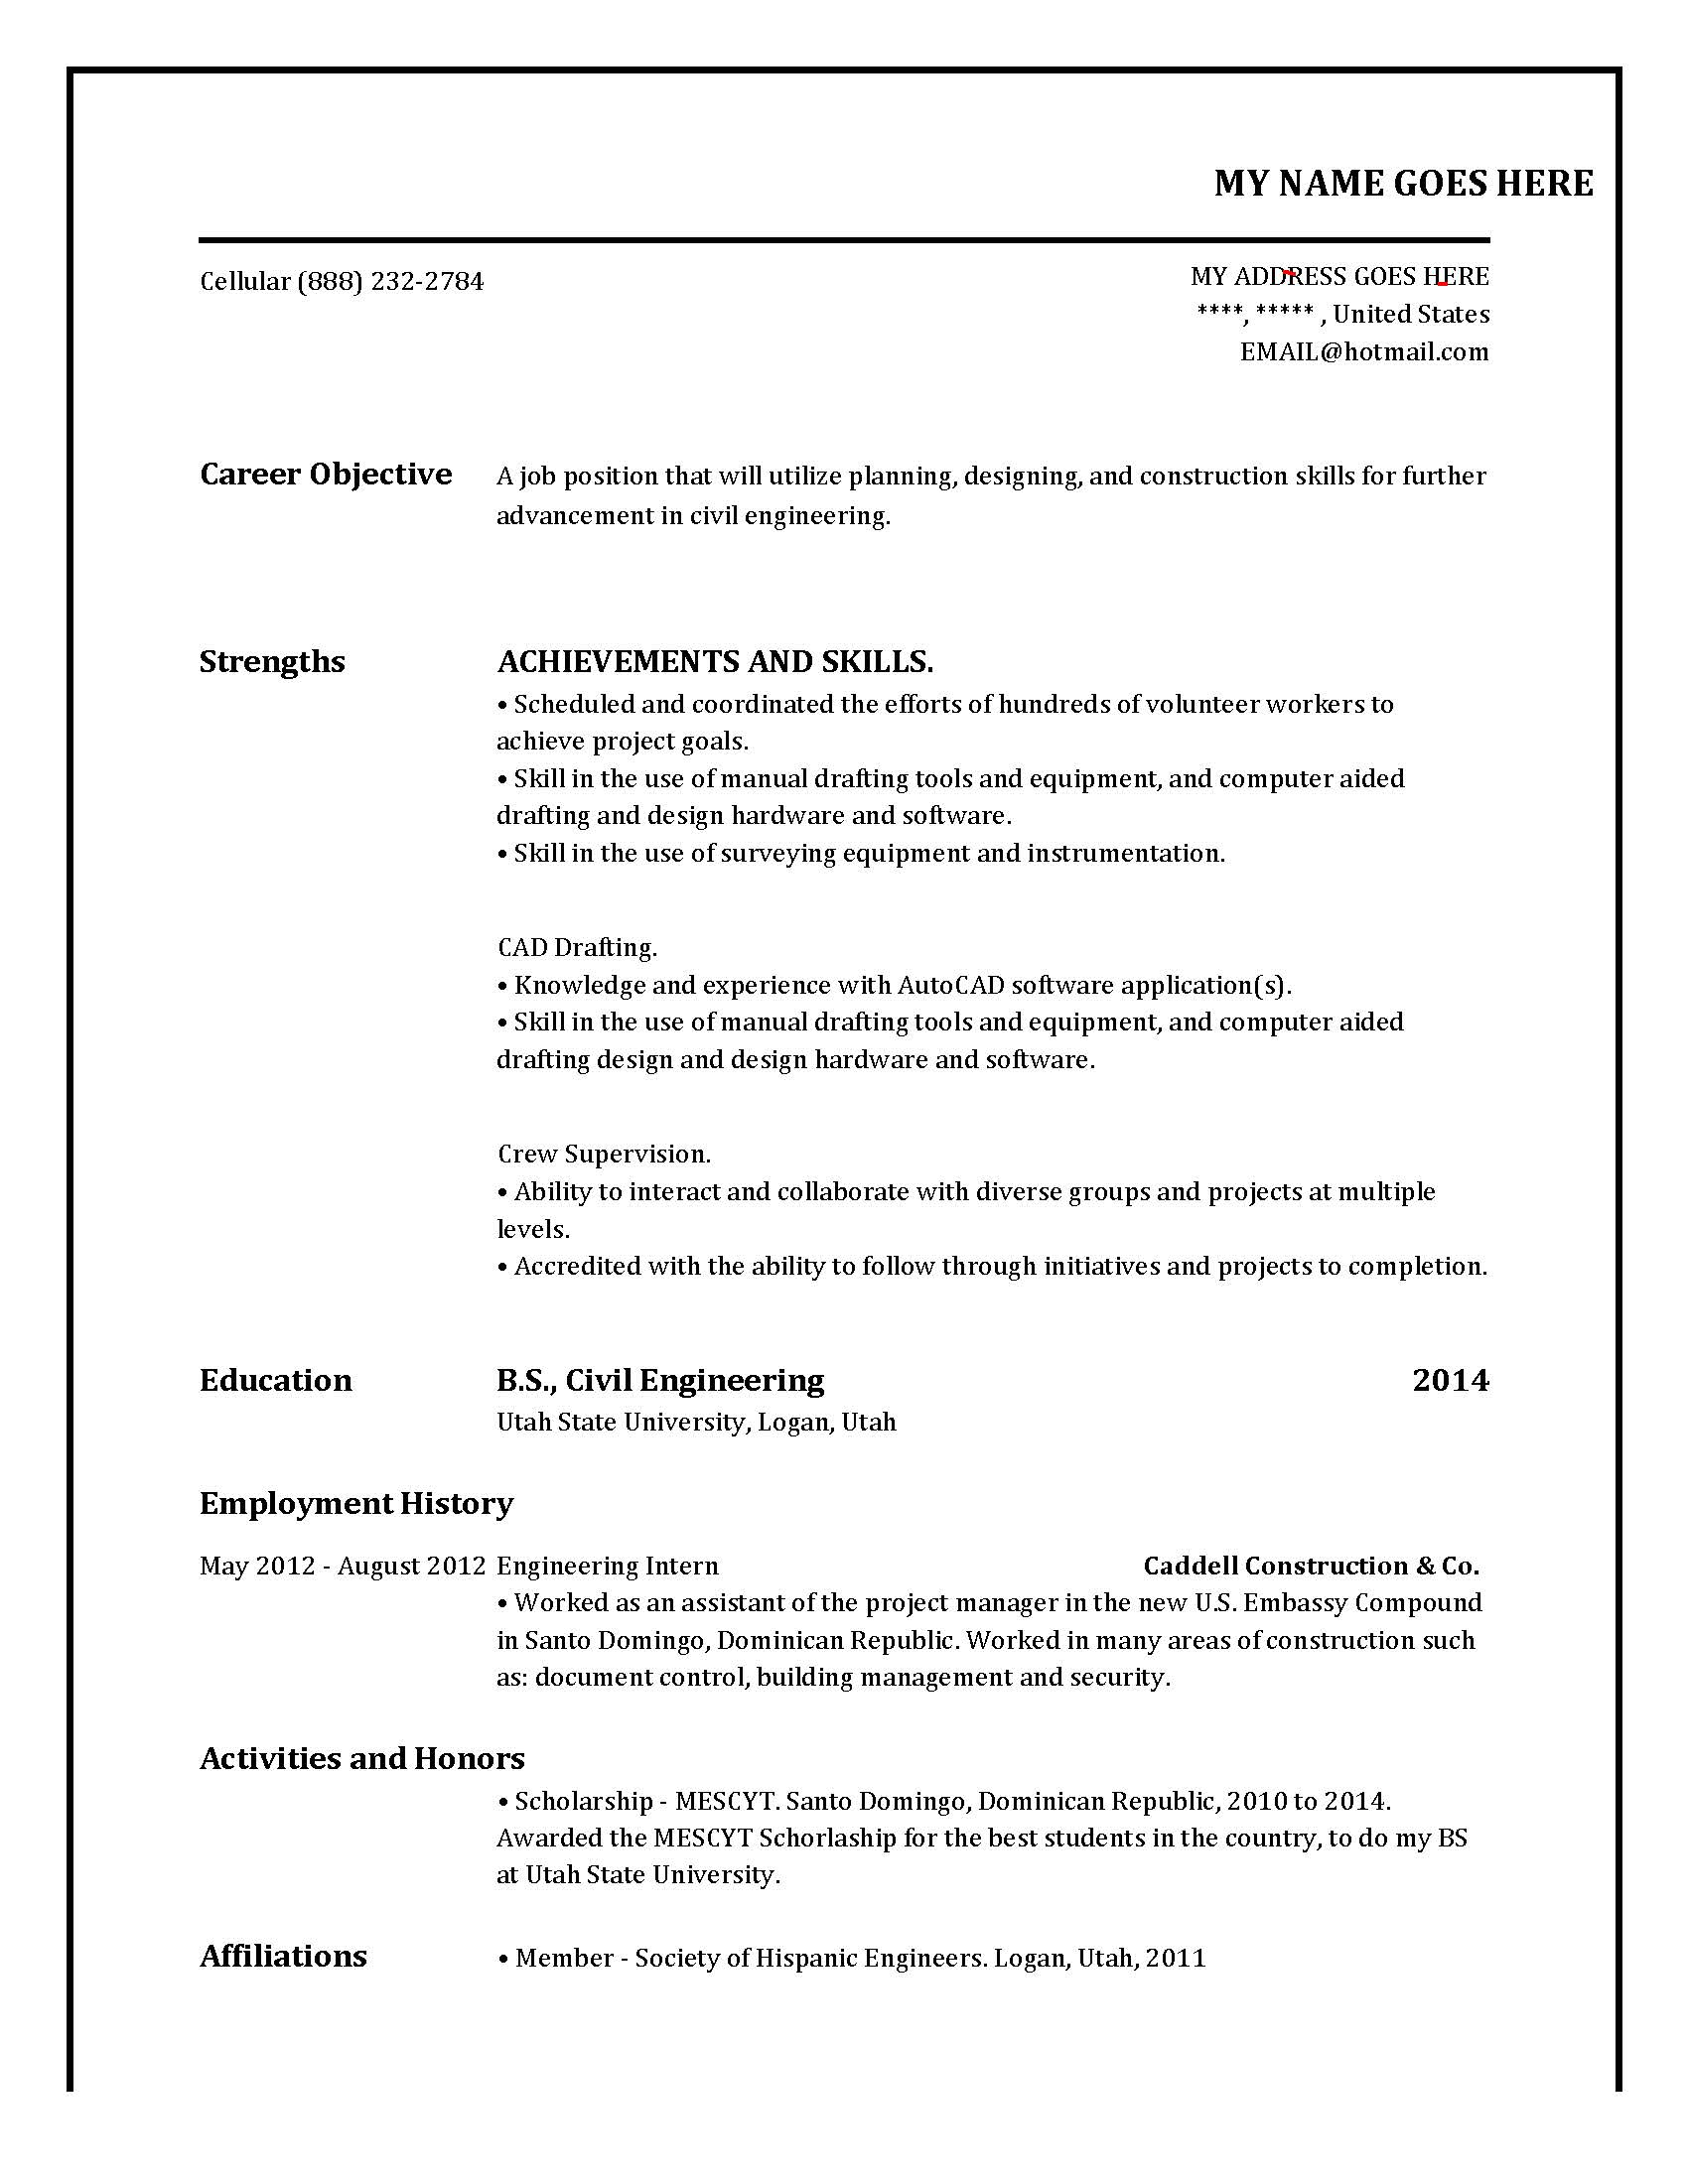 write my cv online free how to write an application letter online - How To Write A Personal Resume